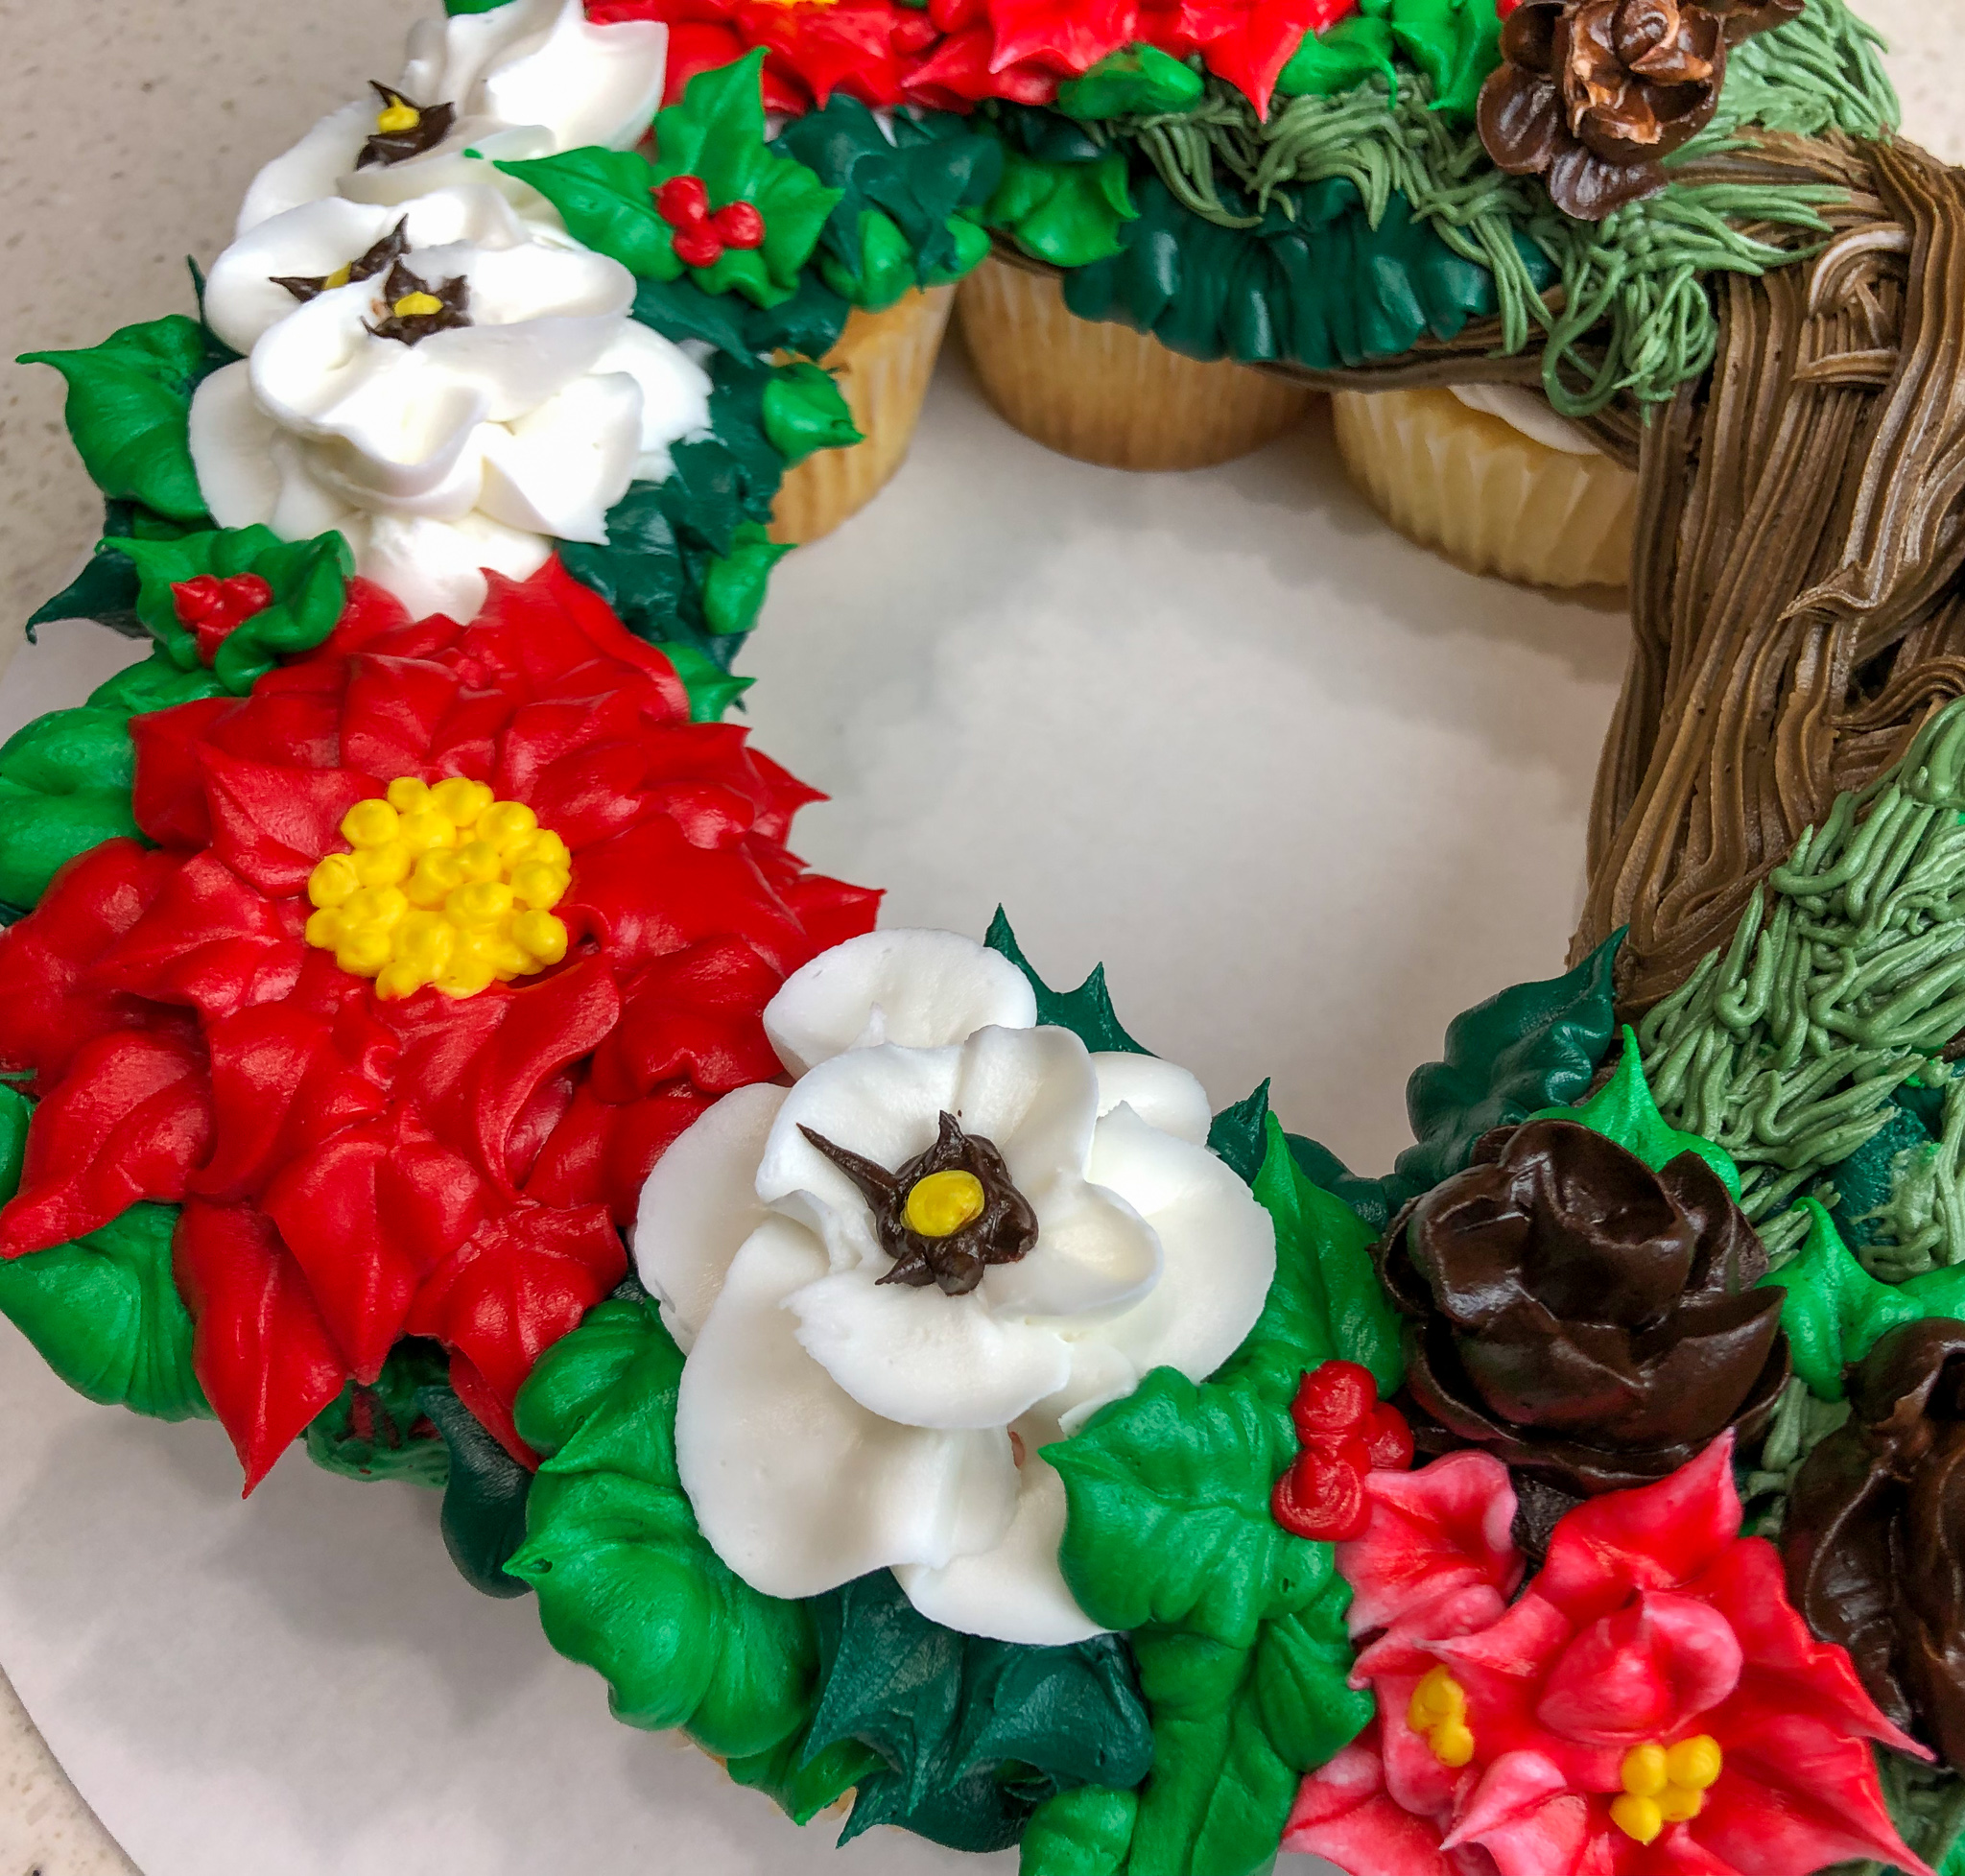 Christmas In July Themed Food.Christmas In July Cupcake Wreath Terri Bakes